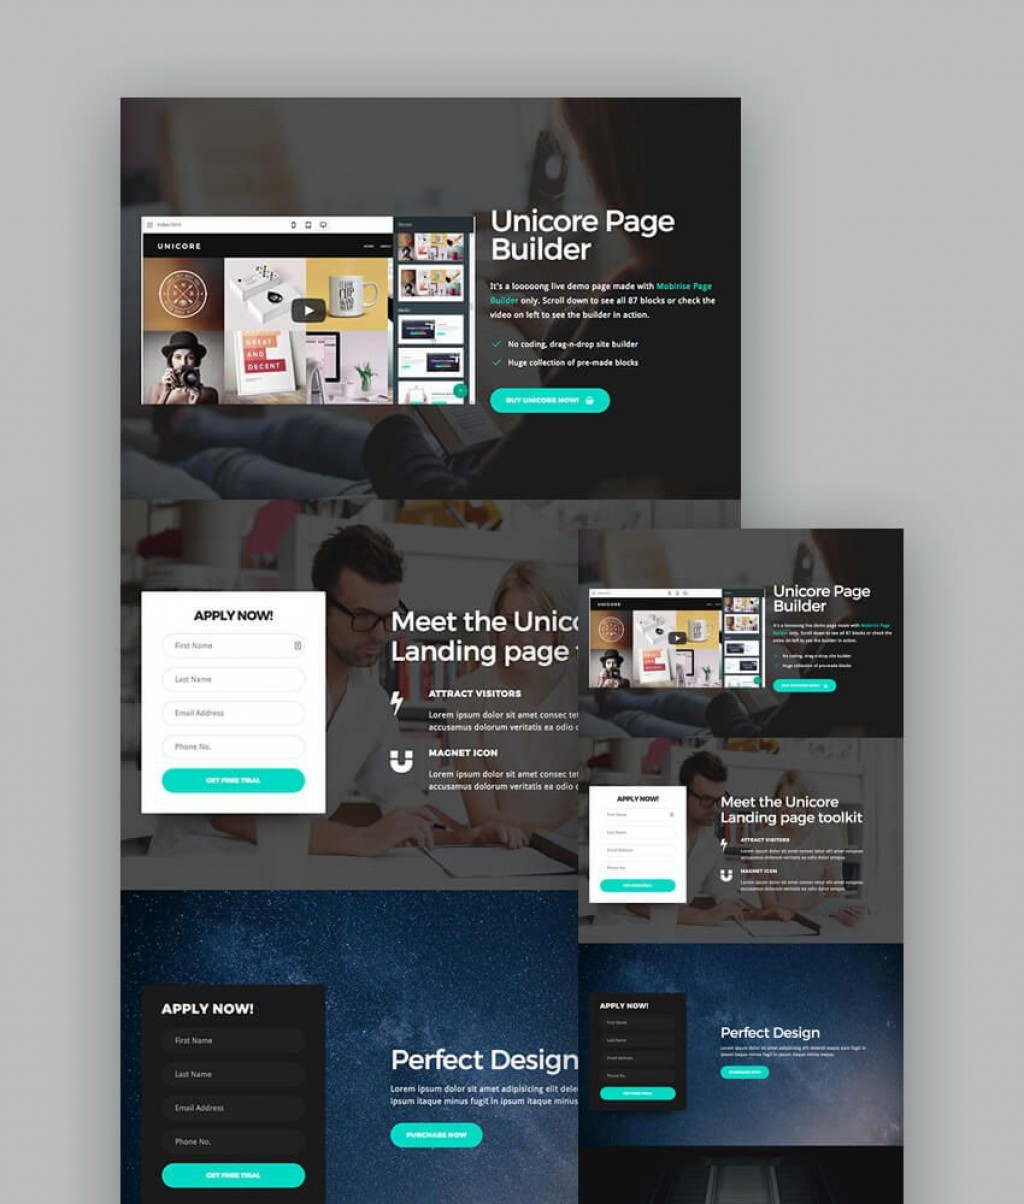 009 Unique Responsive Landing Page Template Design  Templates Html5 Free Download Wordpres HtmlLarge